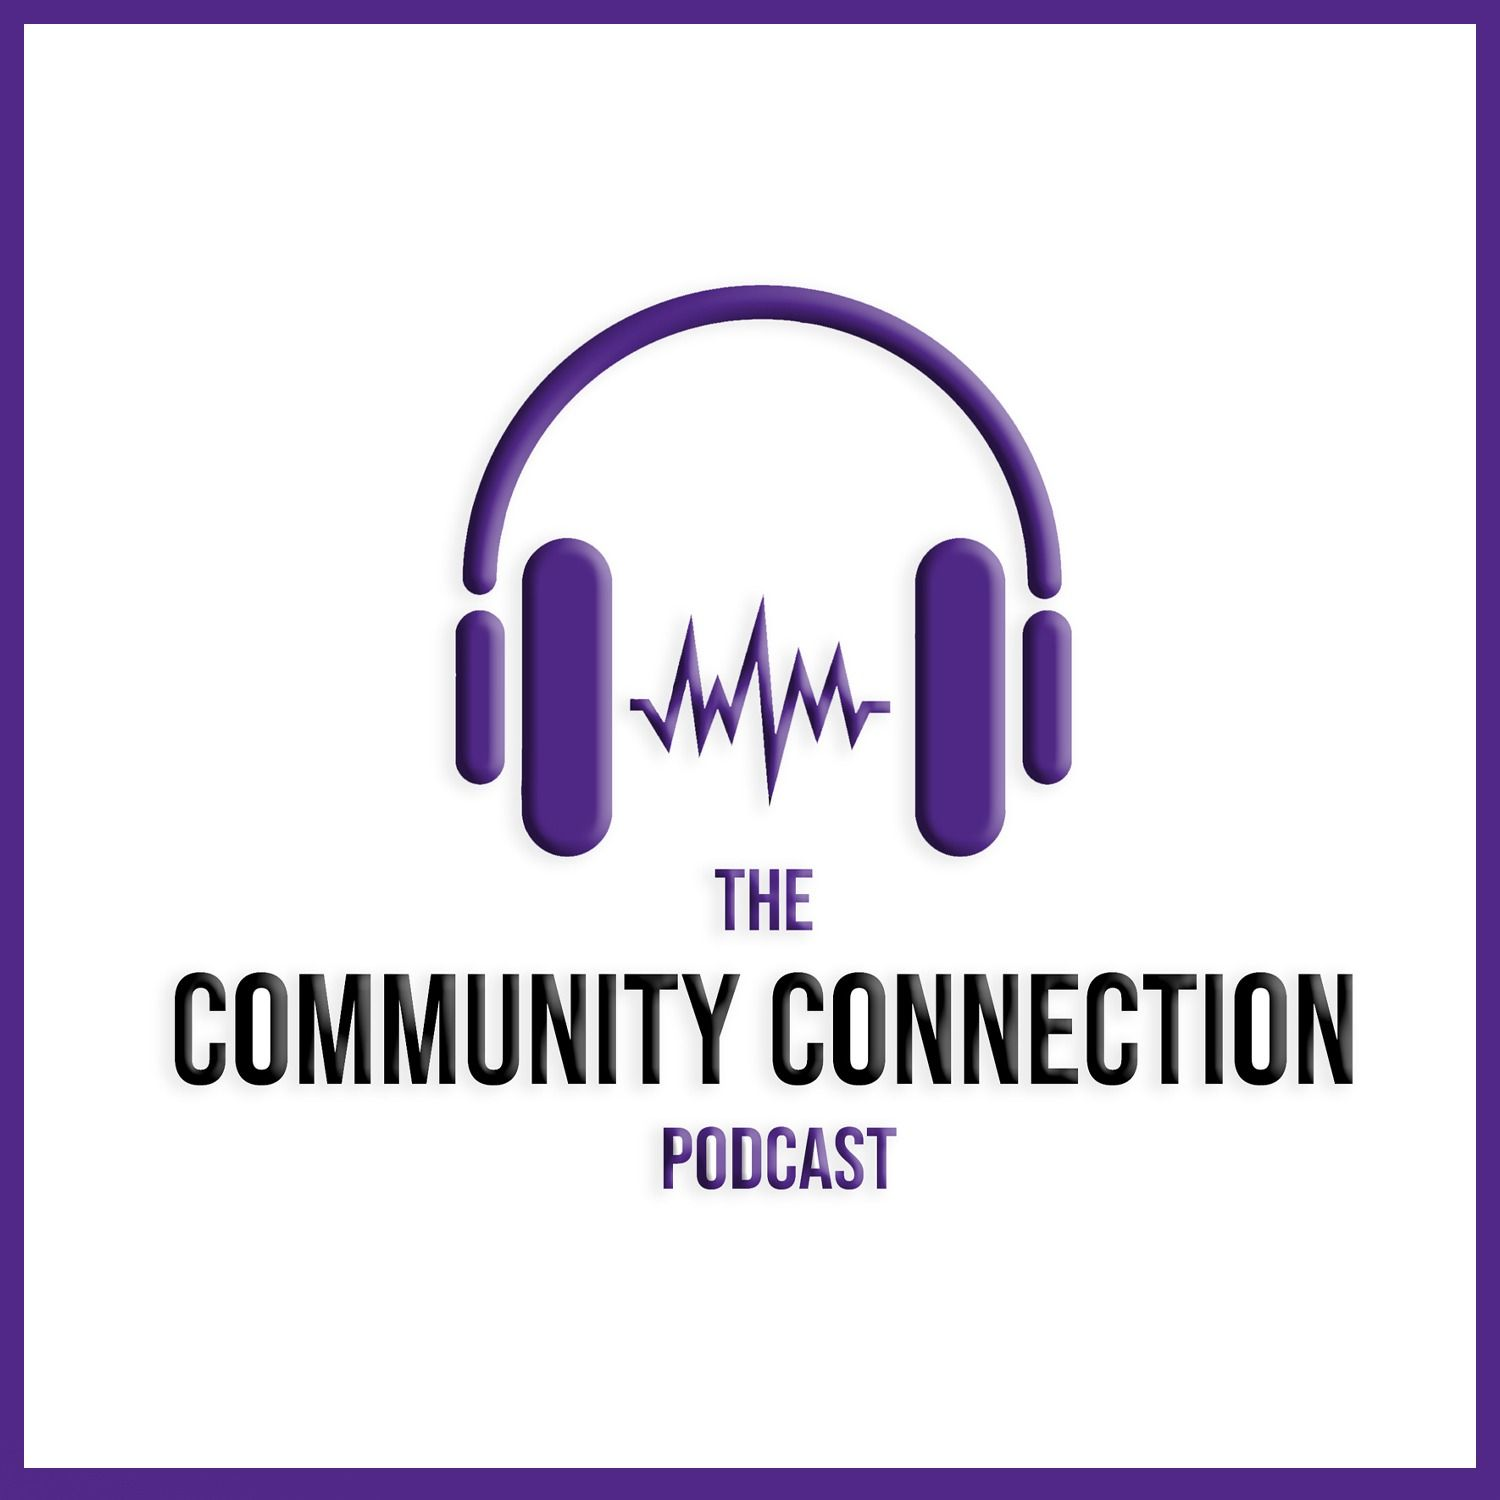 THE COMMUNITY CONNECTION